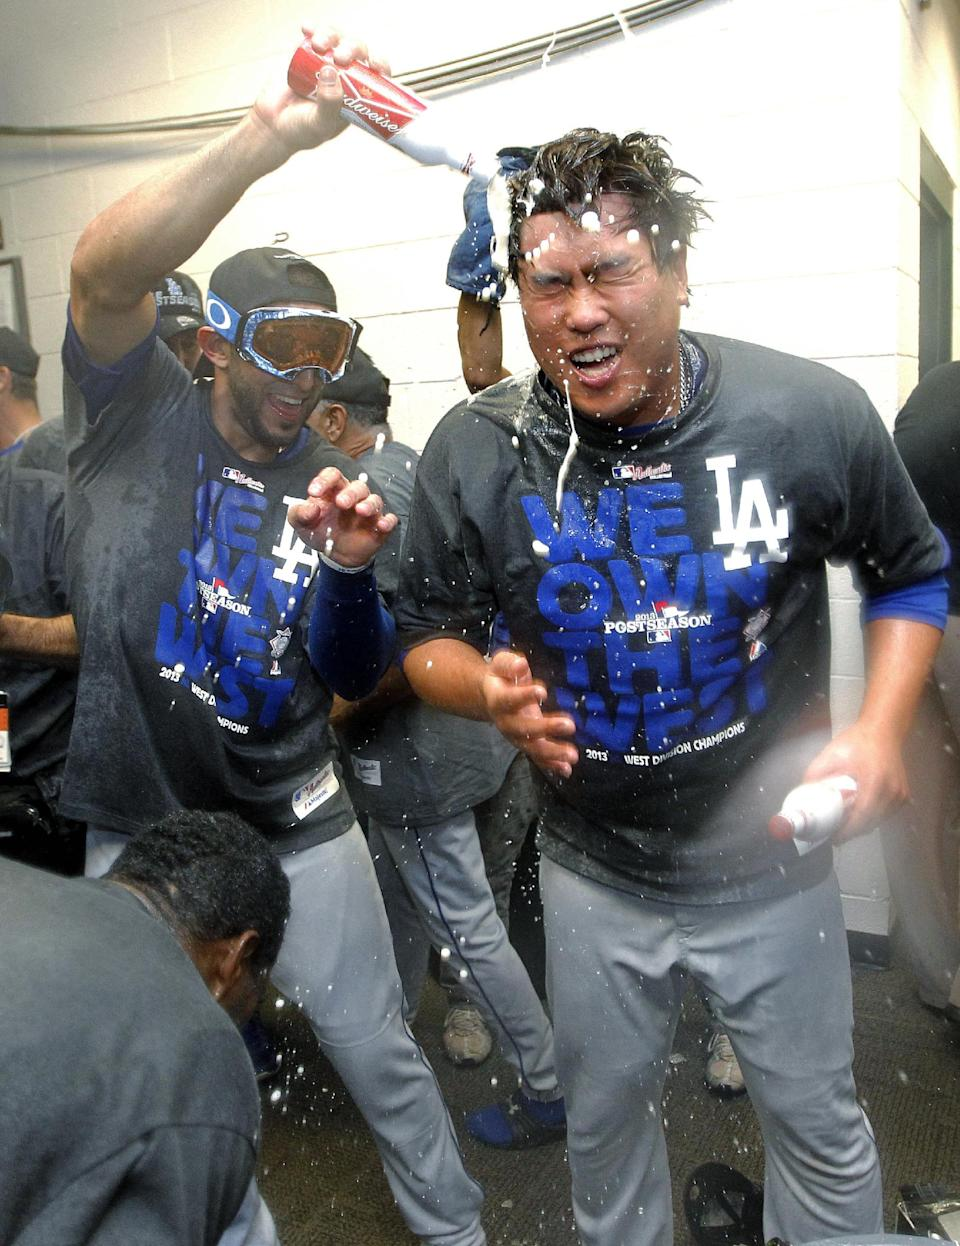 Dodgers clinch NL West, beat Arizona 7-6